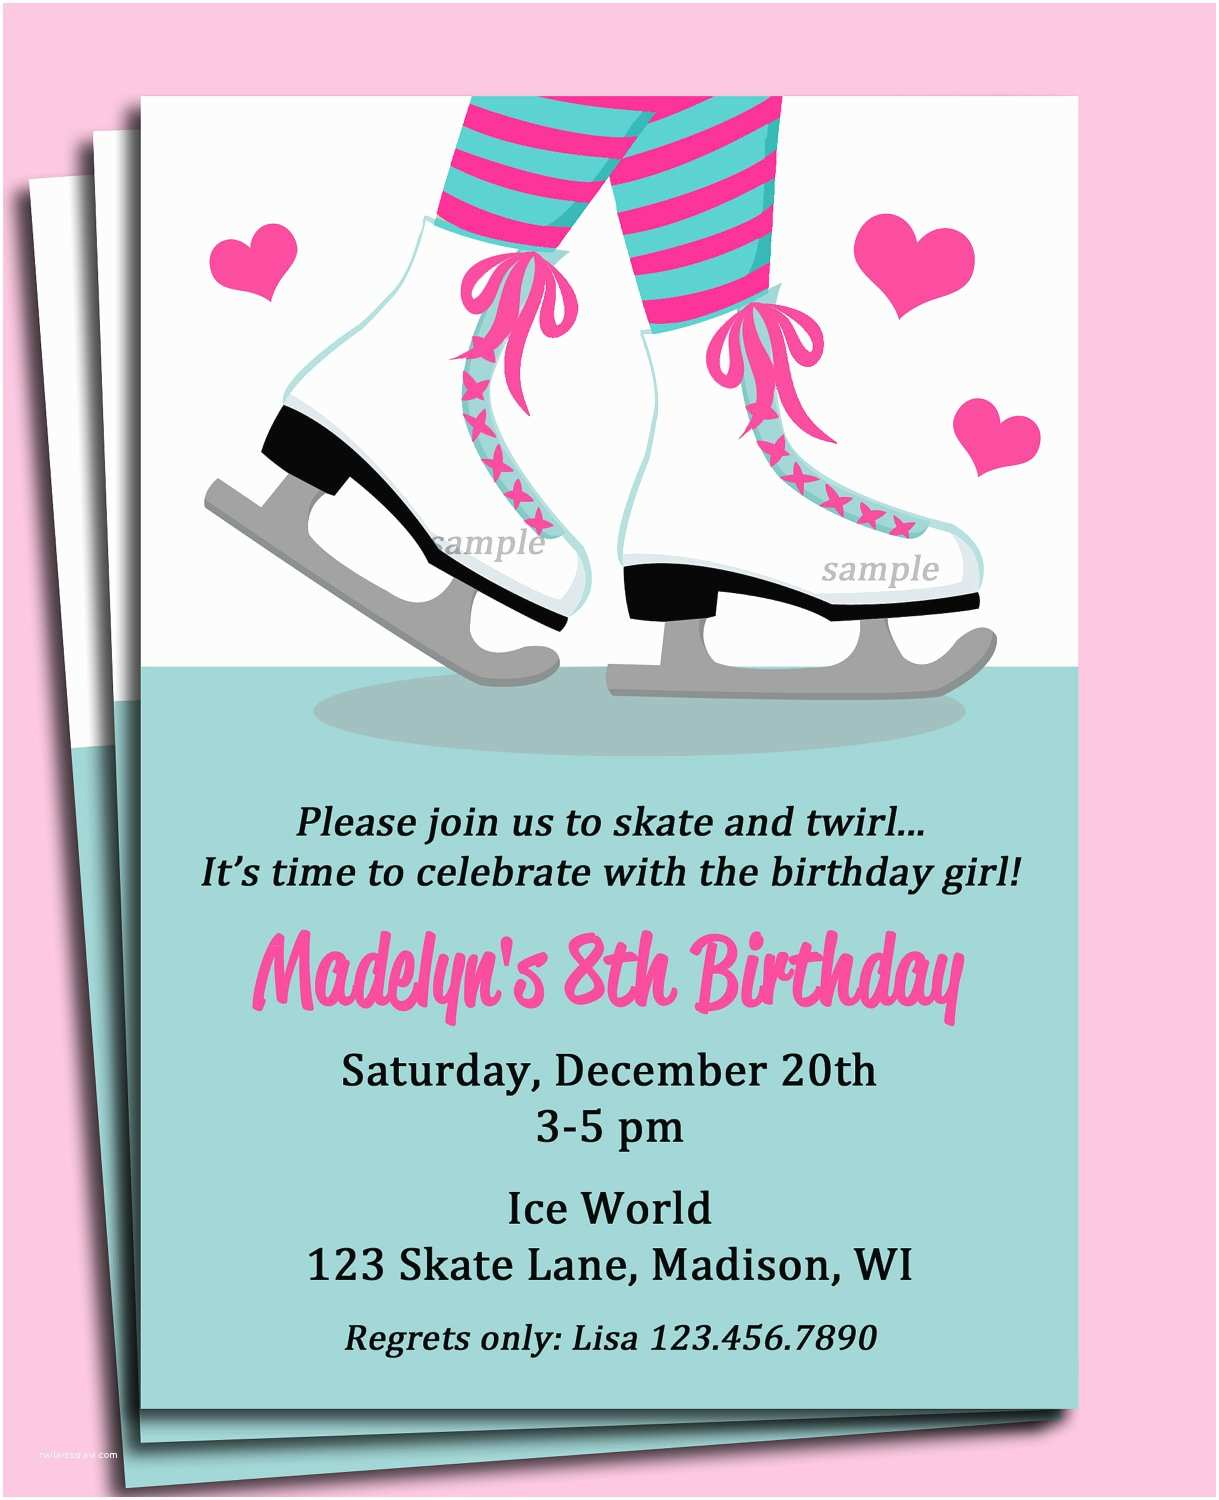 Skate Party Invitations top 10 Ice Skating Birthday Party Invitations